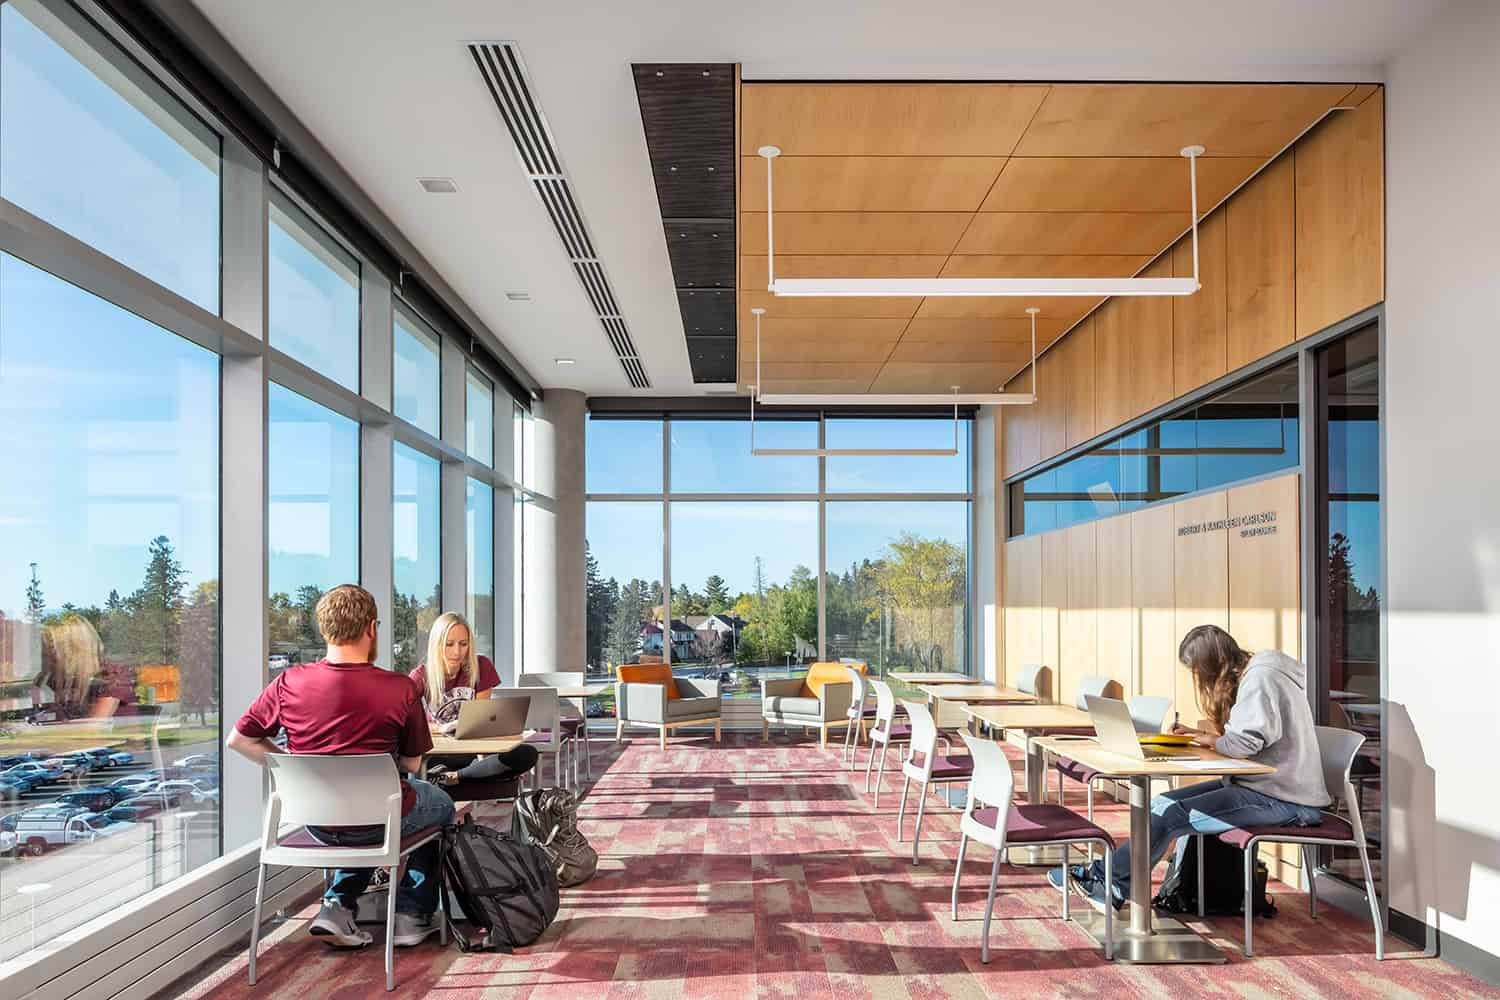 Students studying in a lounge space with floor to ceiling windows.